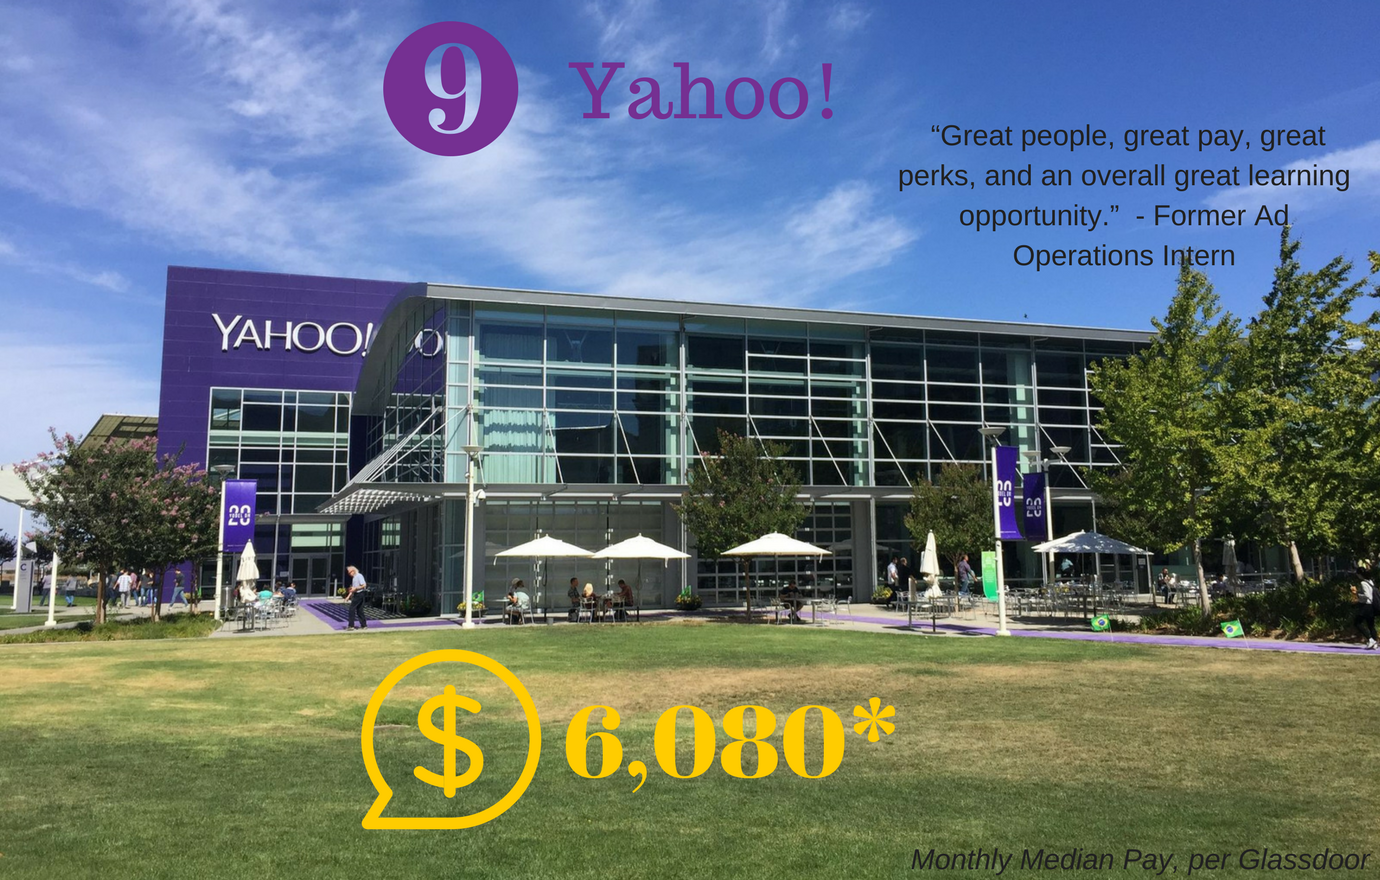 #9. Yahoo! Median Monthly Pay: $6,080. A summer at Yahoo is the best way to discover first hand what life at Yahoo will be like. (Image: Glassdoor)